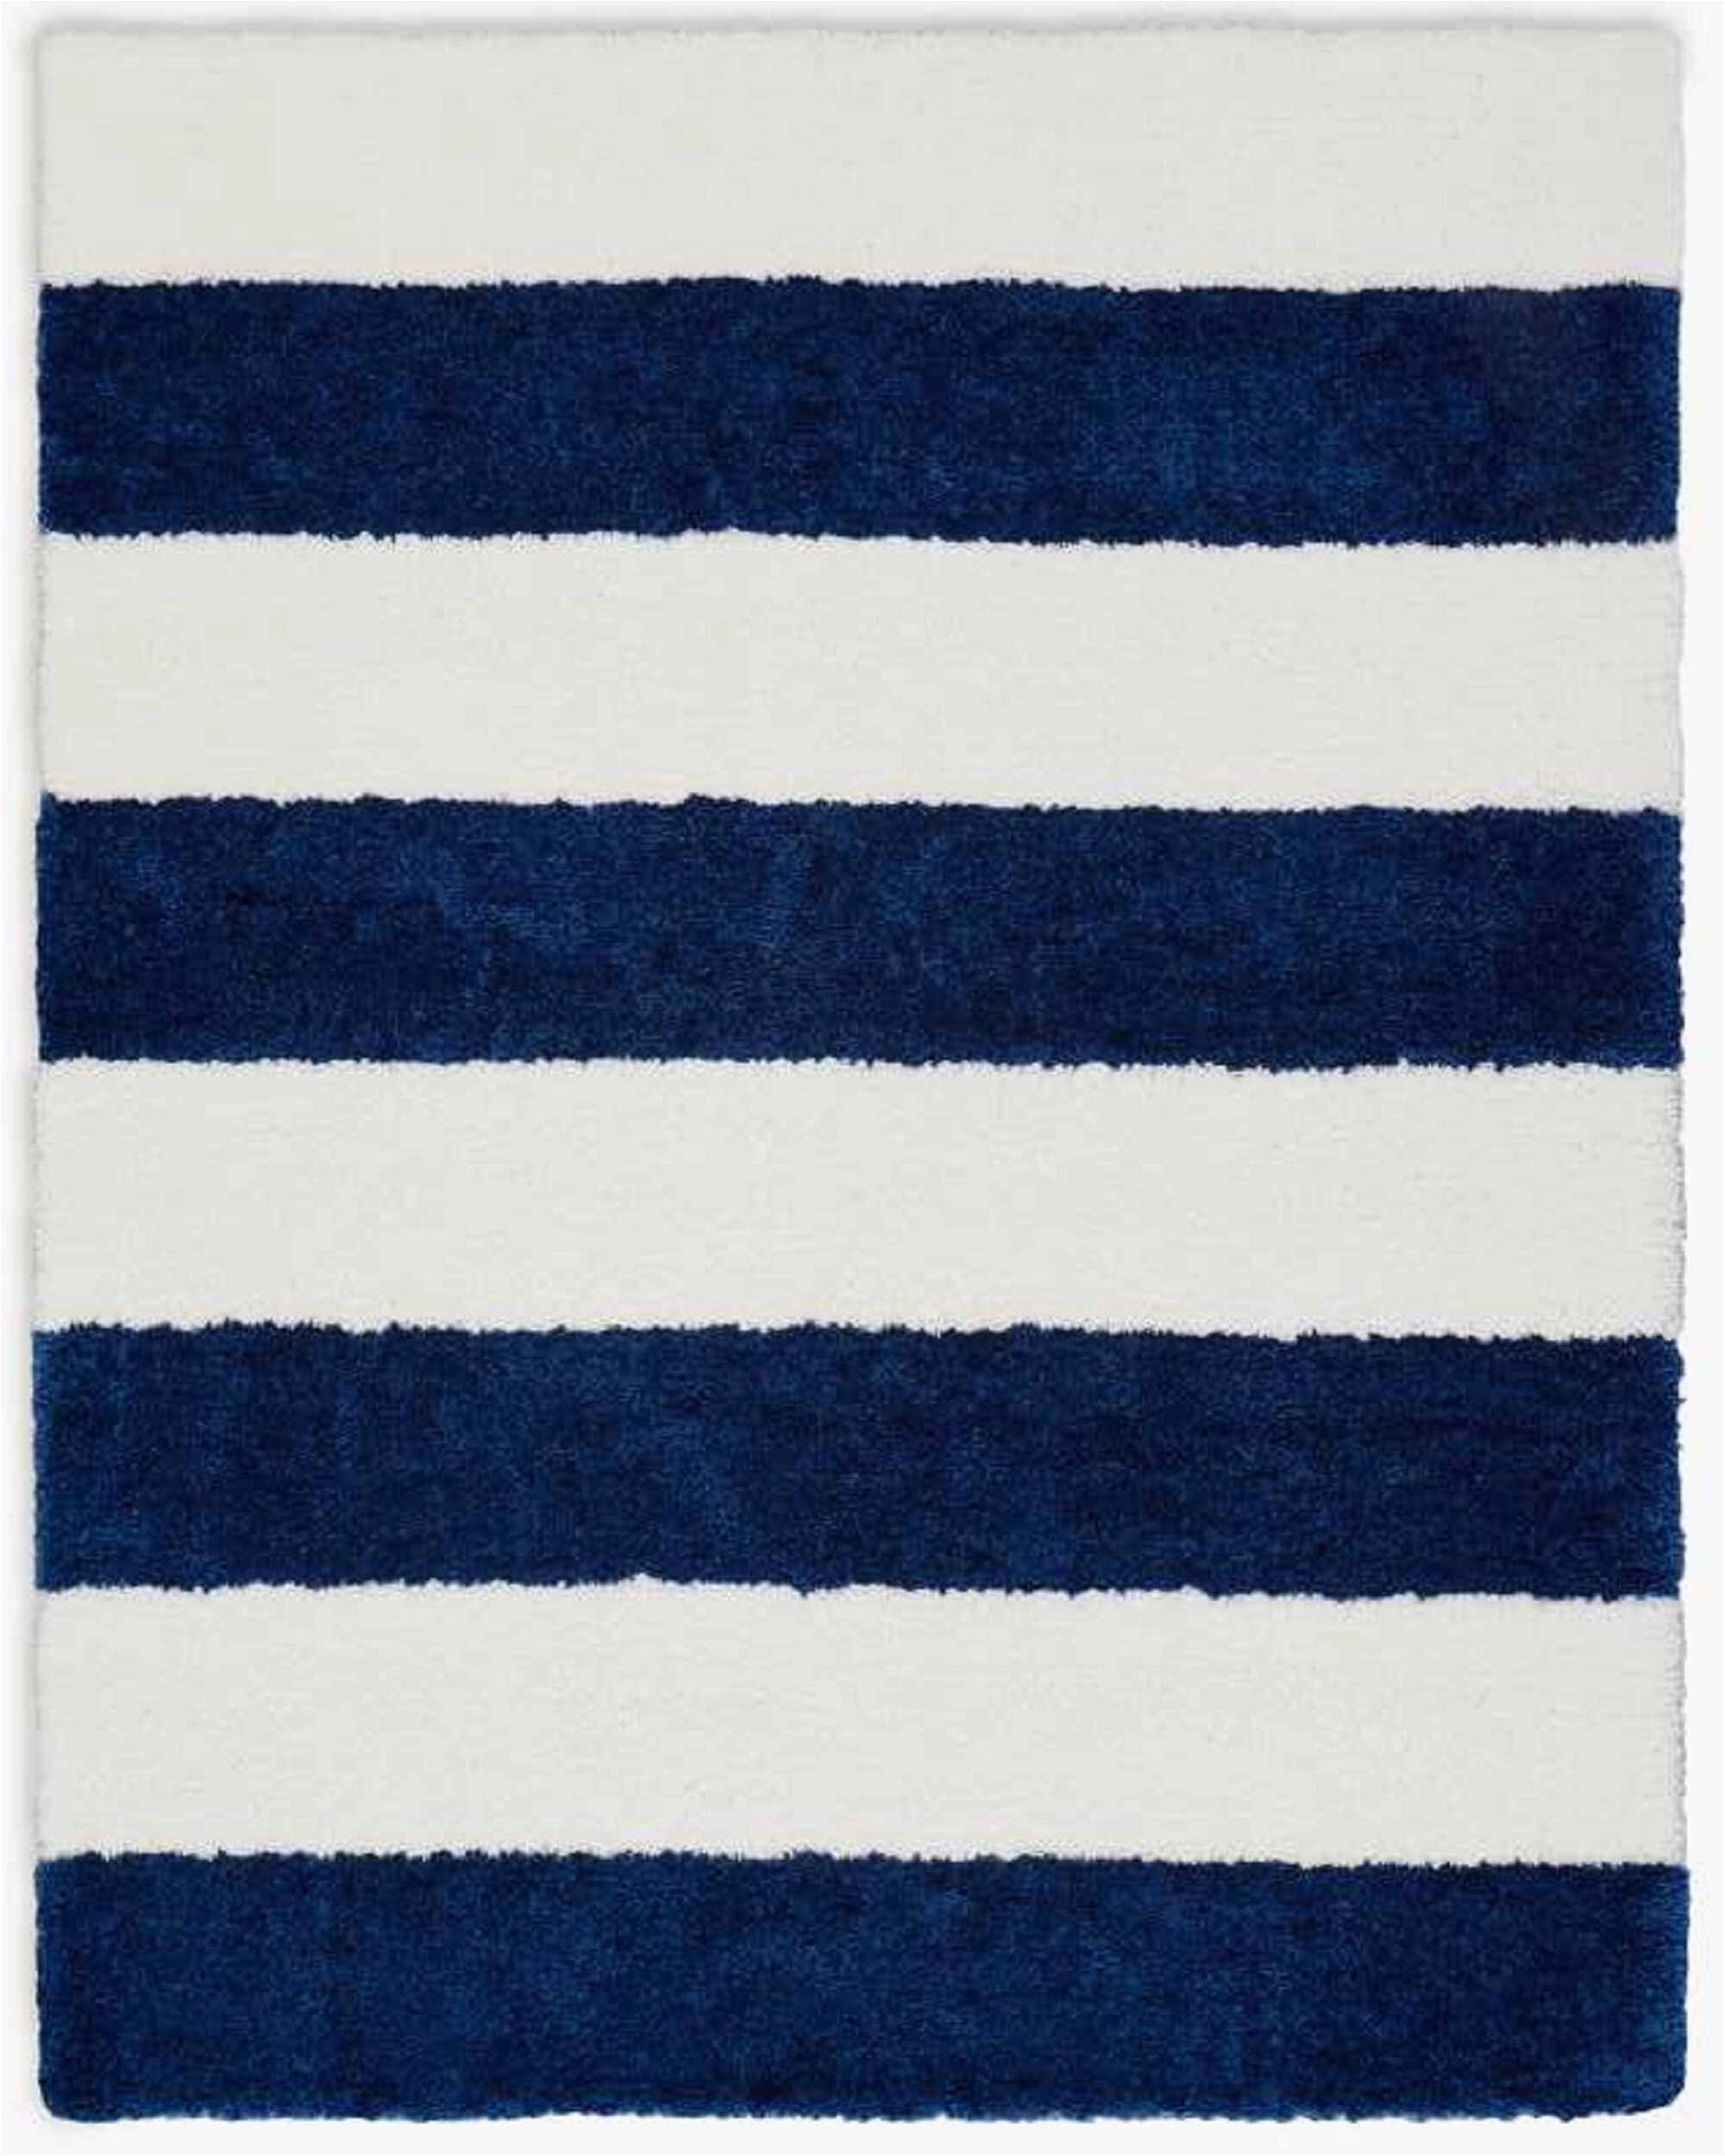 Navy Blue Striped area Rug Chicago Striped Handmade Shag White Navy Blue area Rug